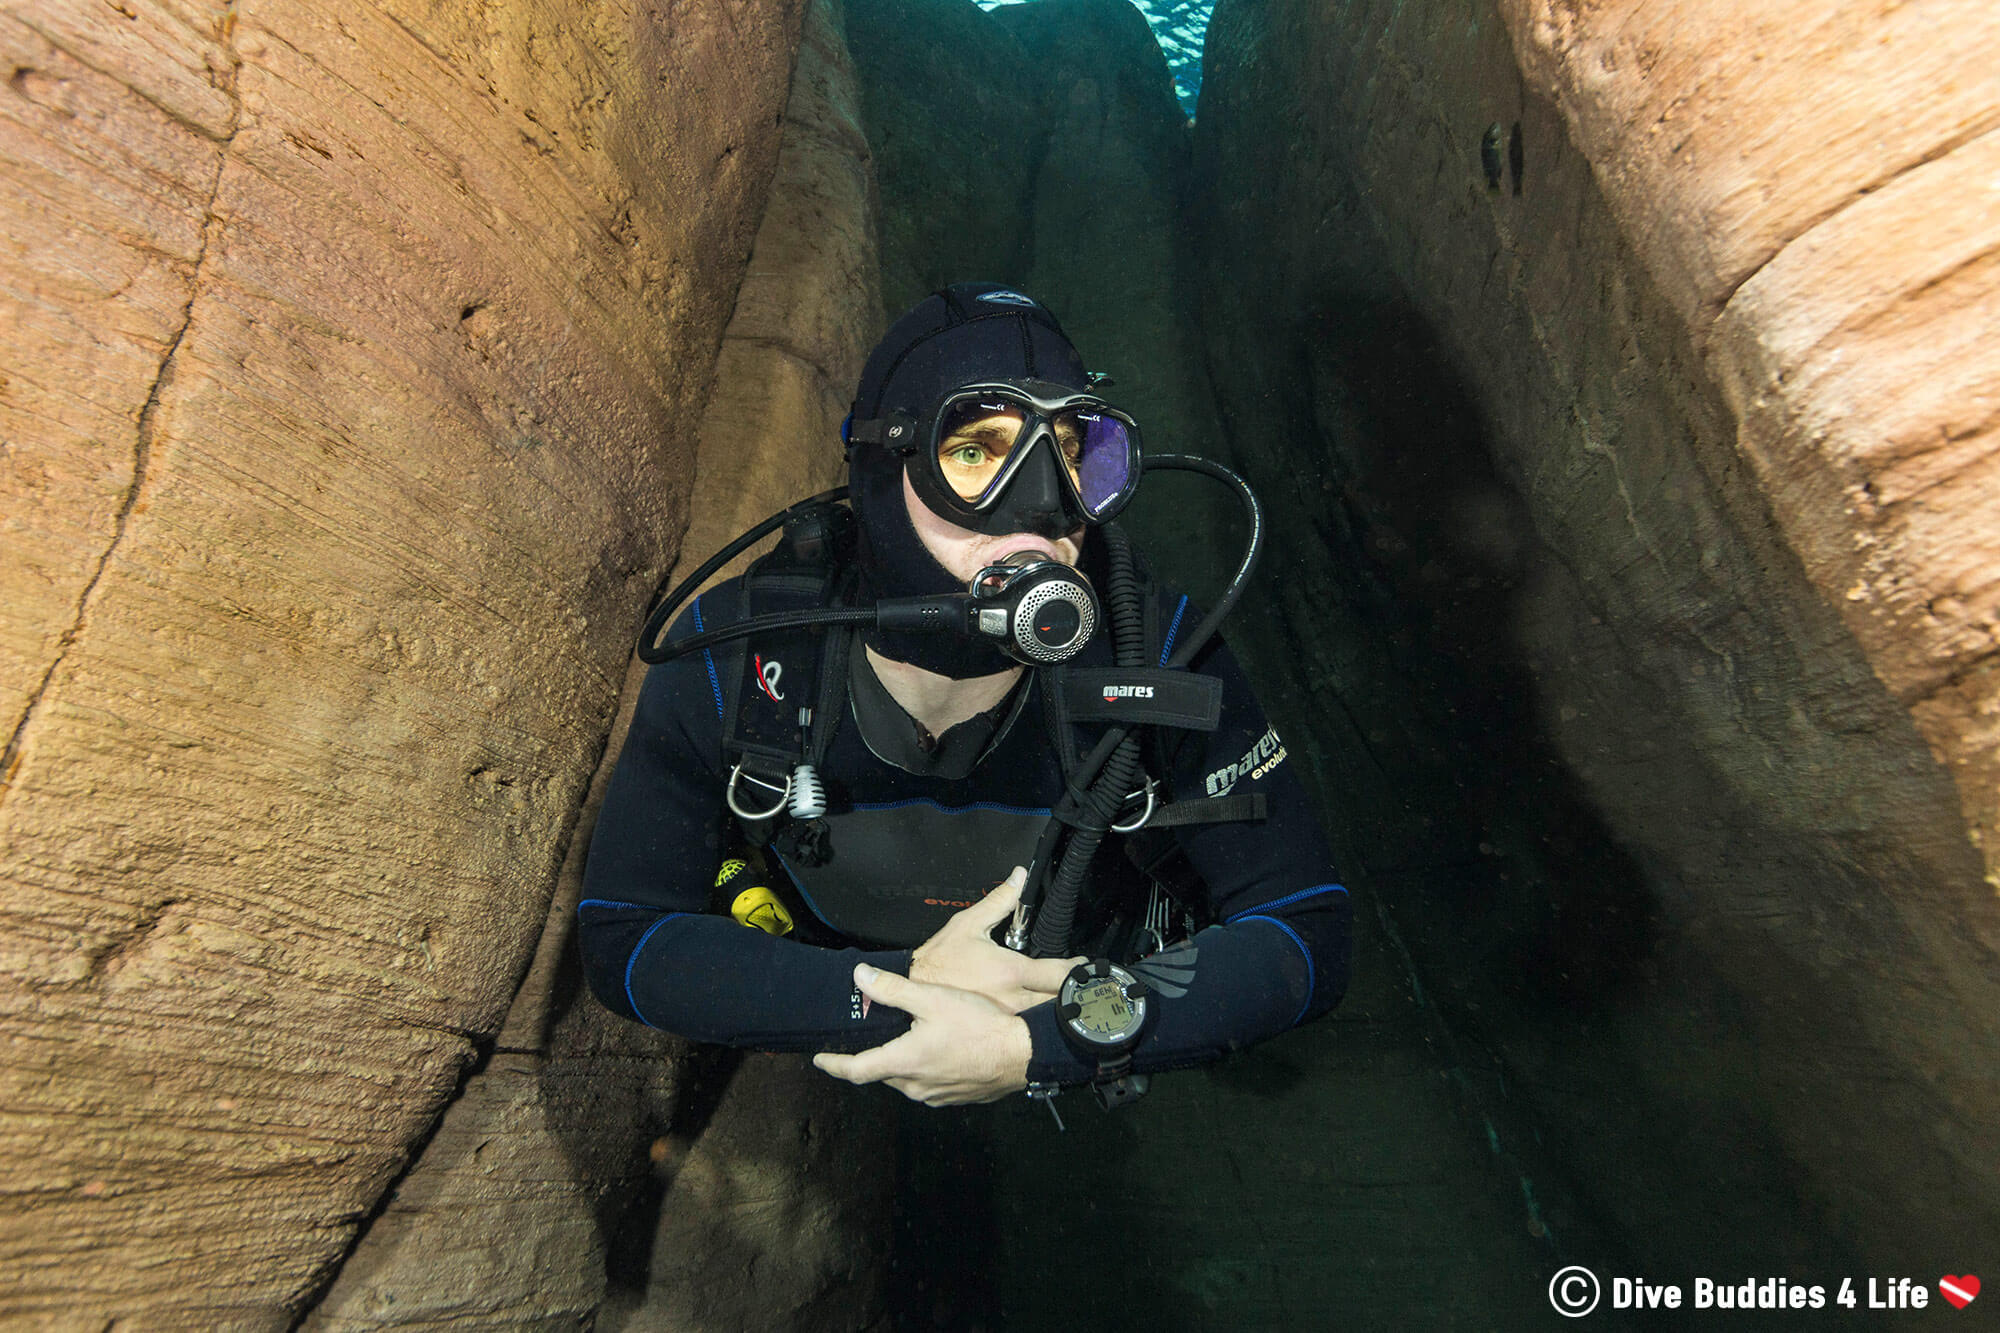 Joey Scuba Diving In The TODI Underwater Canyon Aquascape In Belgium, Europe